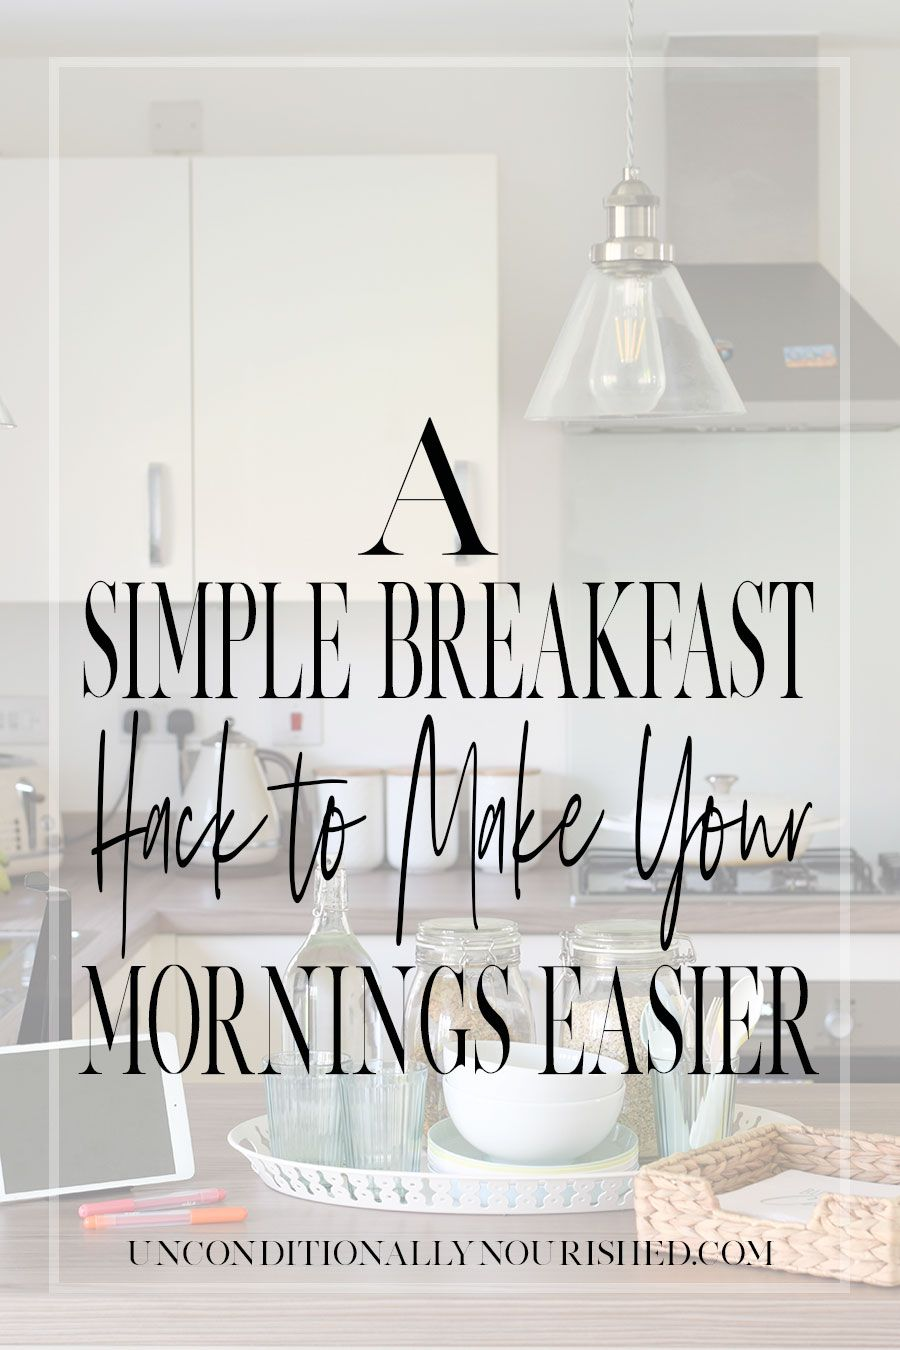 If your mornings are chaotic and breakfast is often skipped, check out this simple breakfast hack to make your mornings easier.